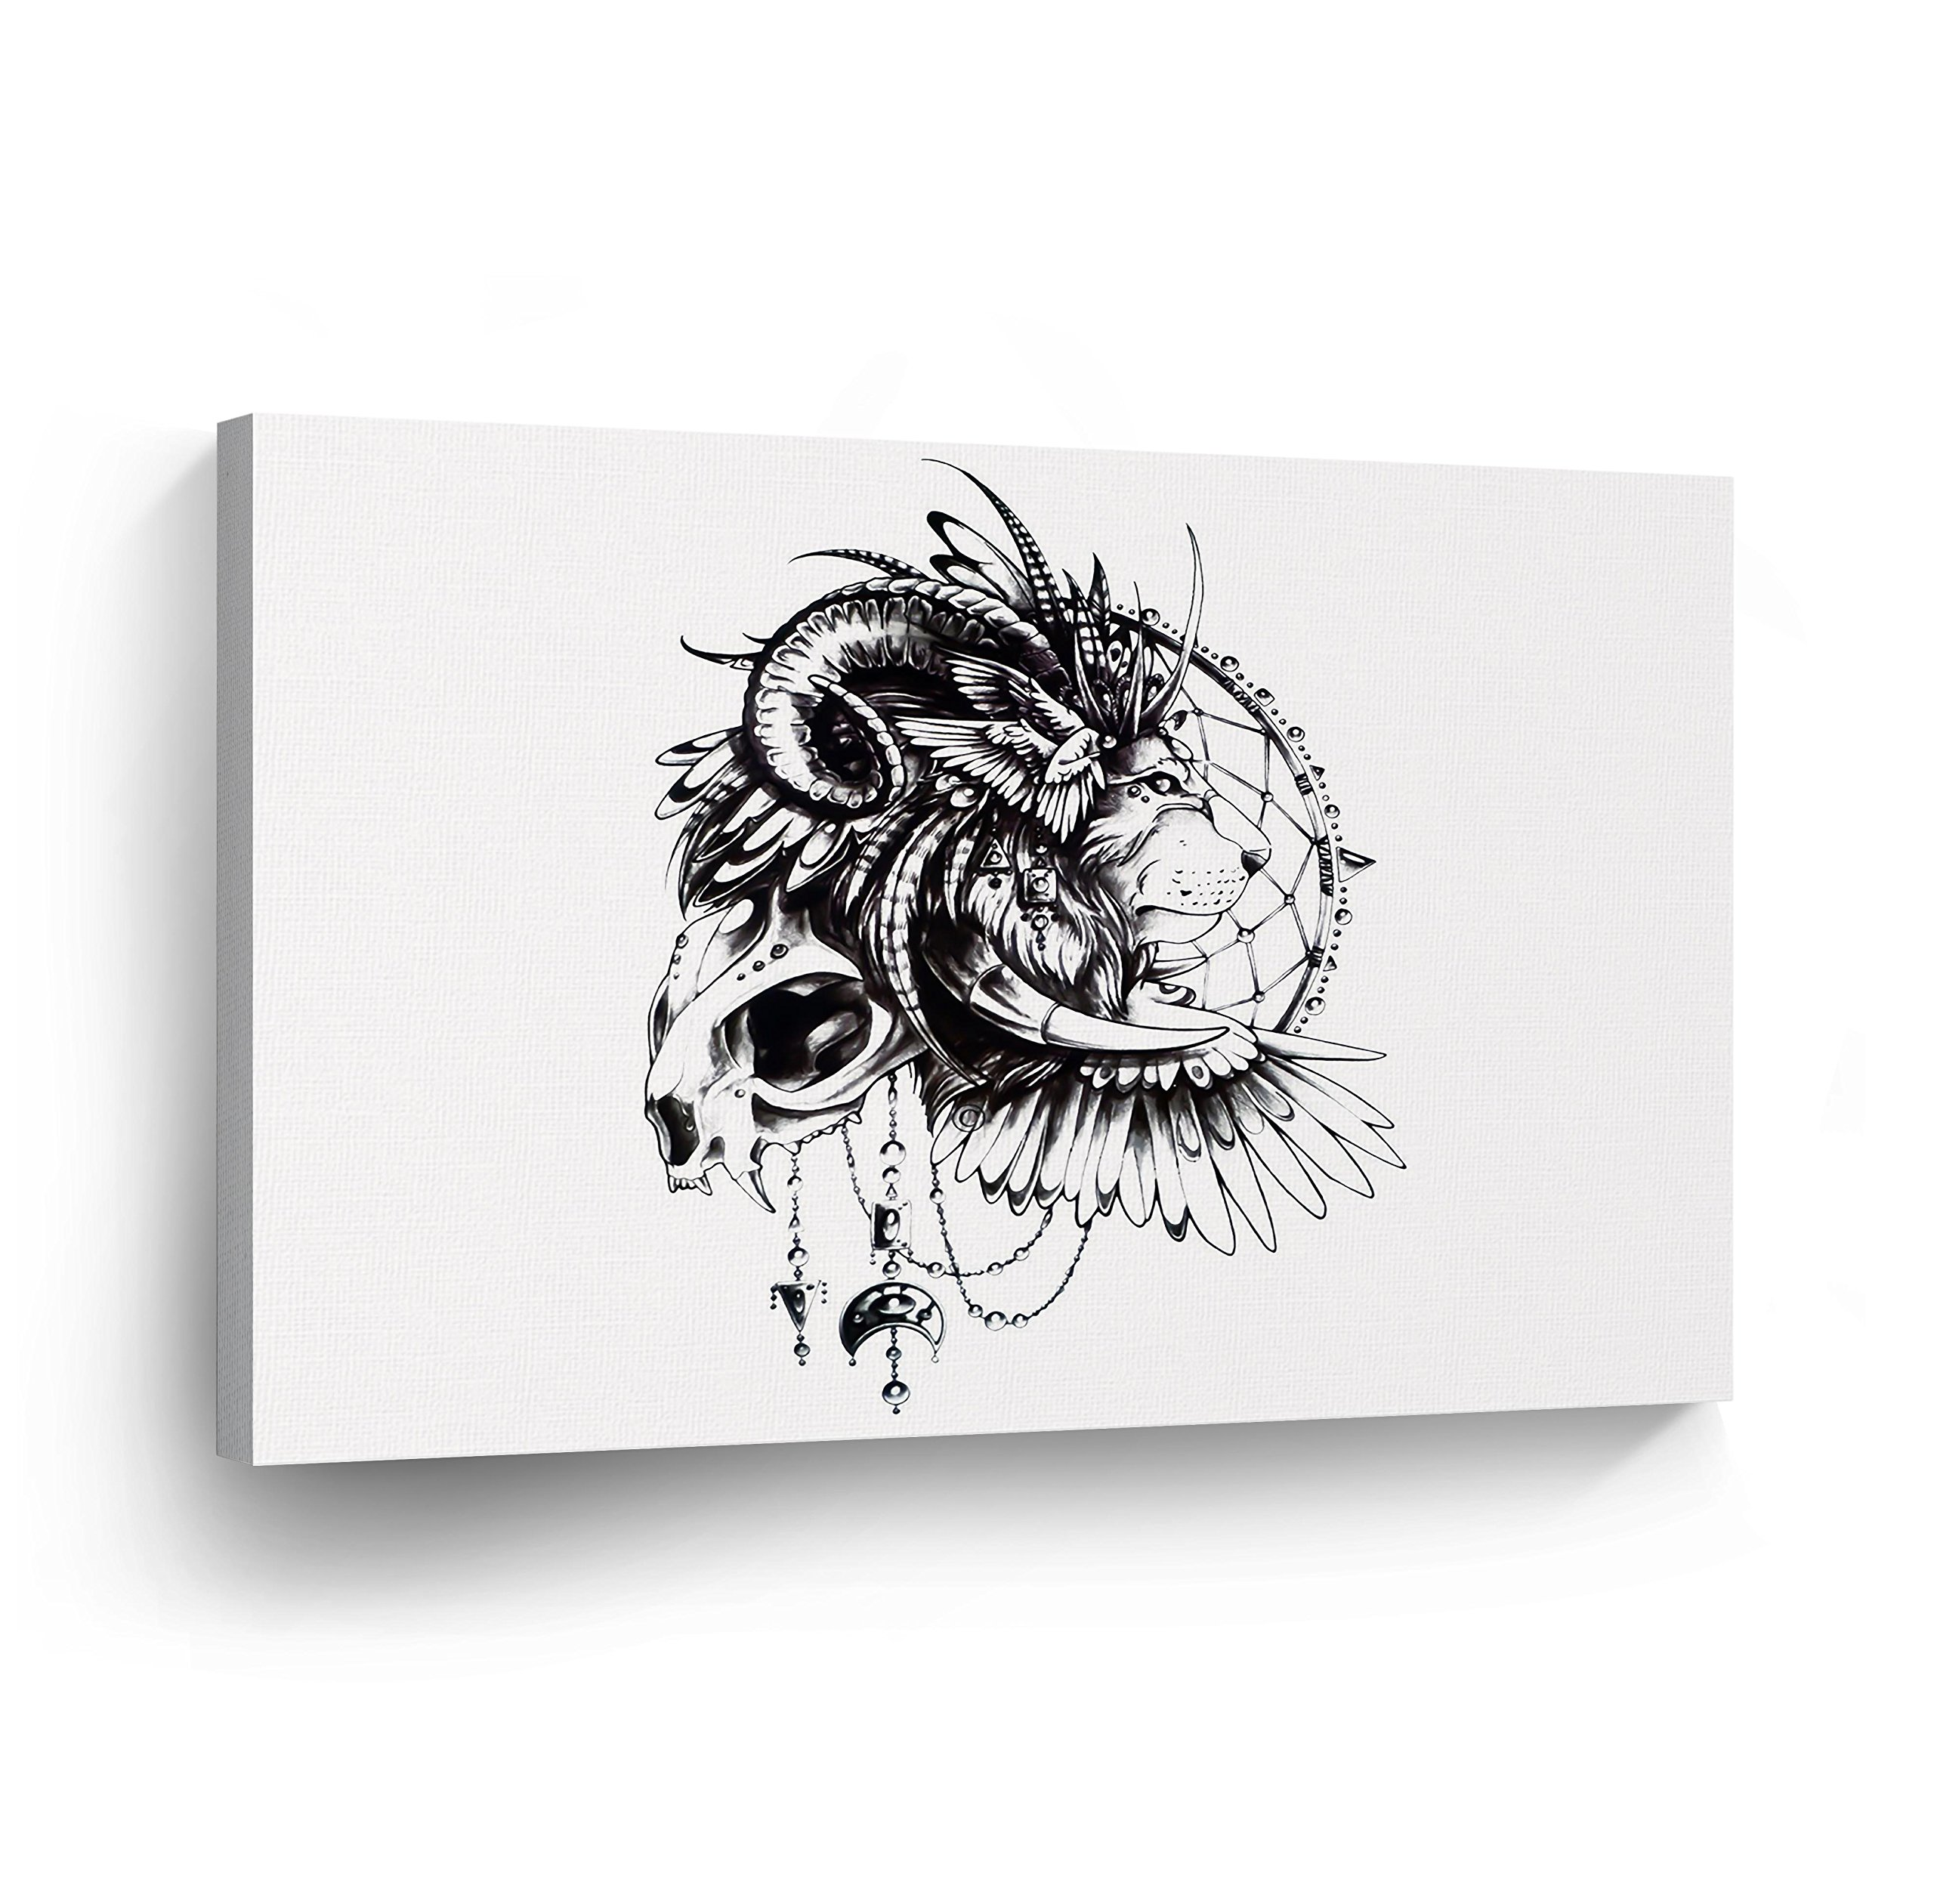 Dream Catcher Black and White Lion and Skull CANVAS PRINT Wall Art Bohemian Decor Boho Home Decor Indian Artwork Gallery Wrapped Wood Stretched Ready to Hang -%100 Handmade in the USA - 15x22